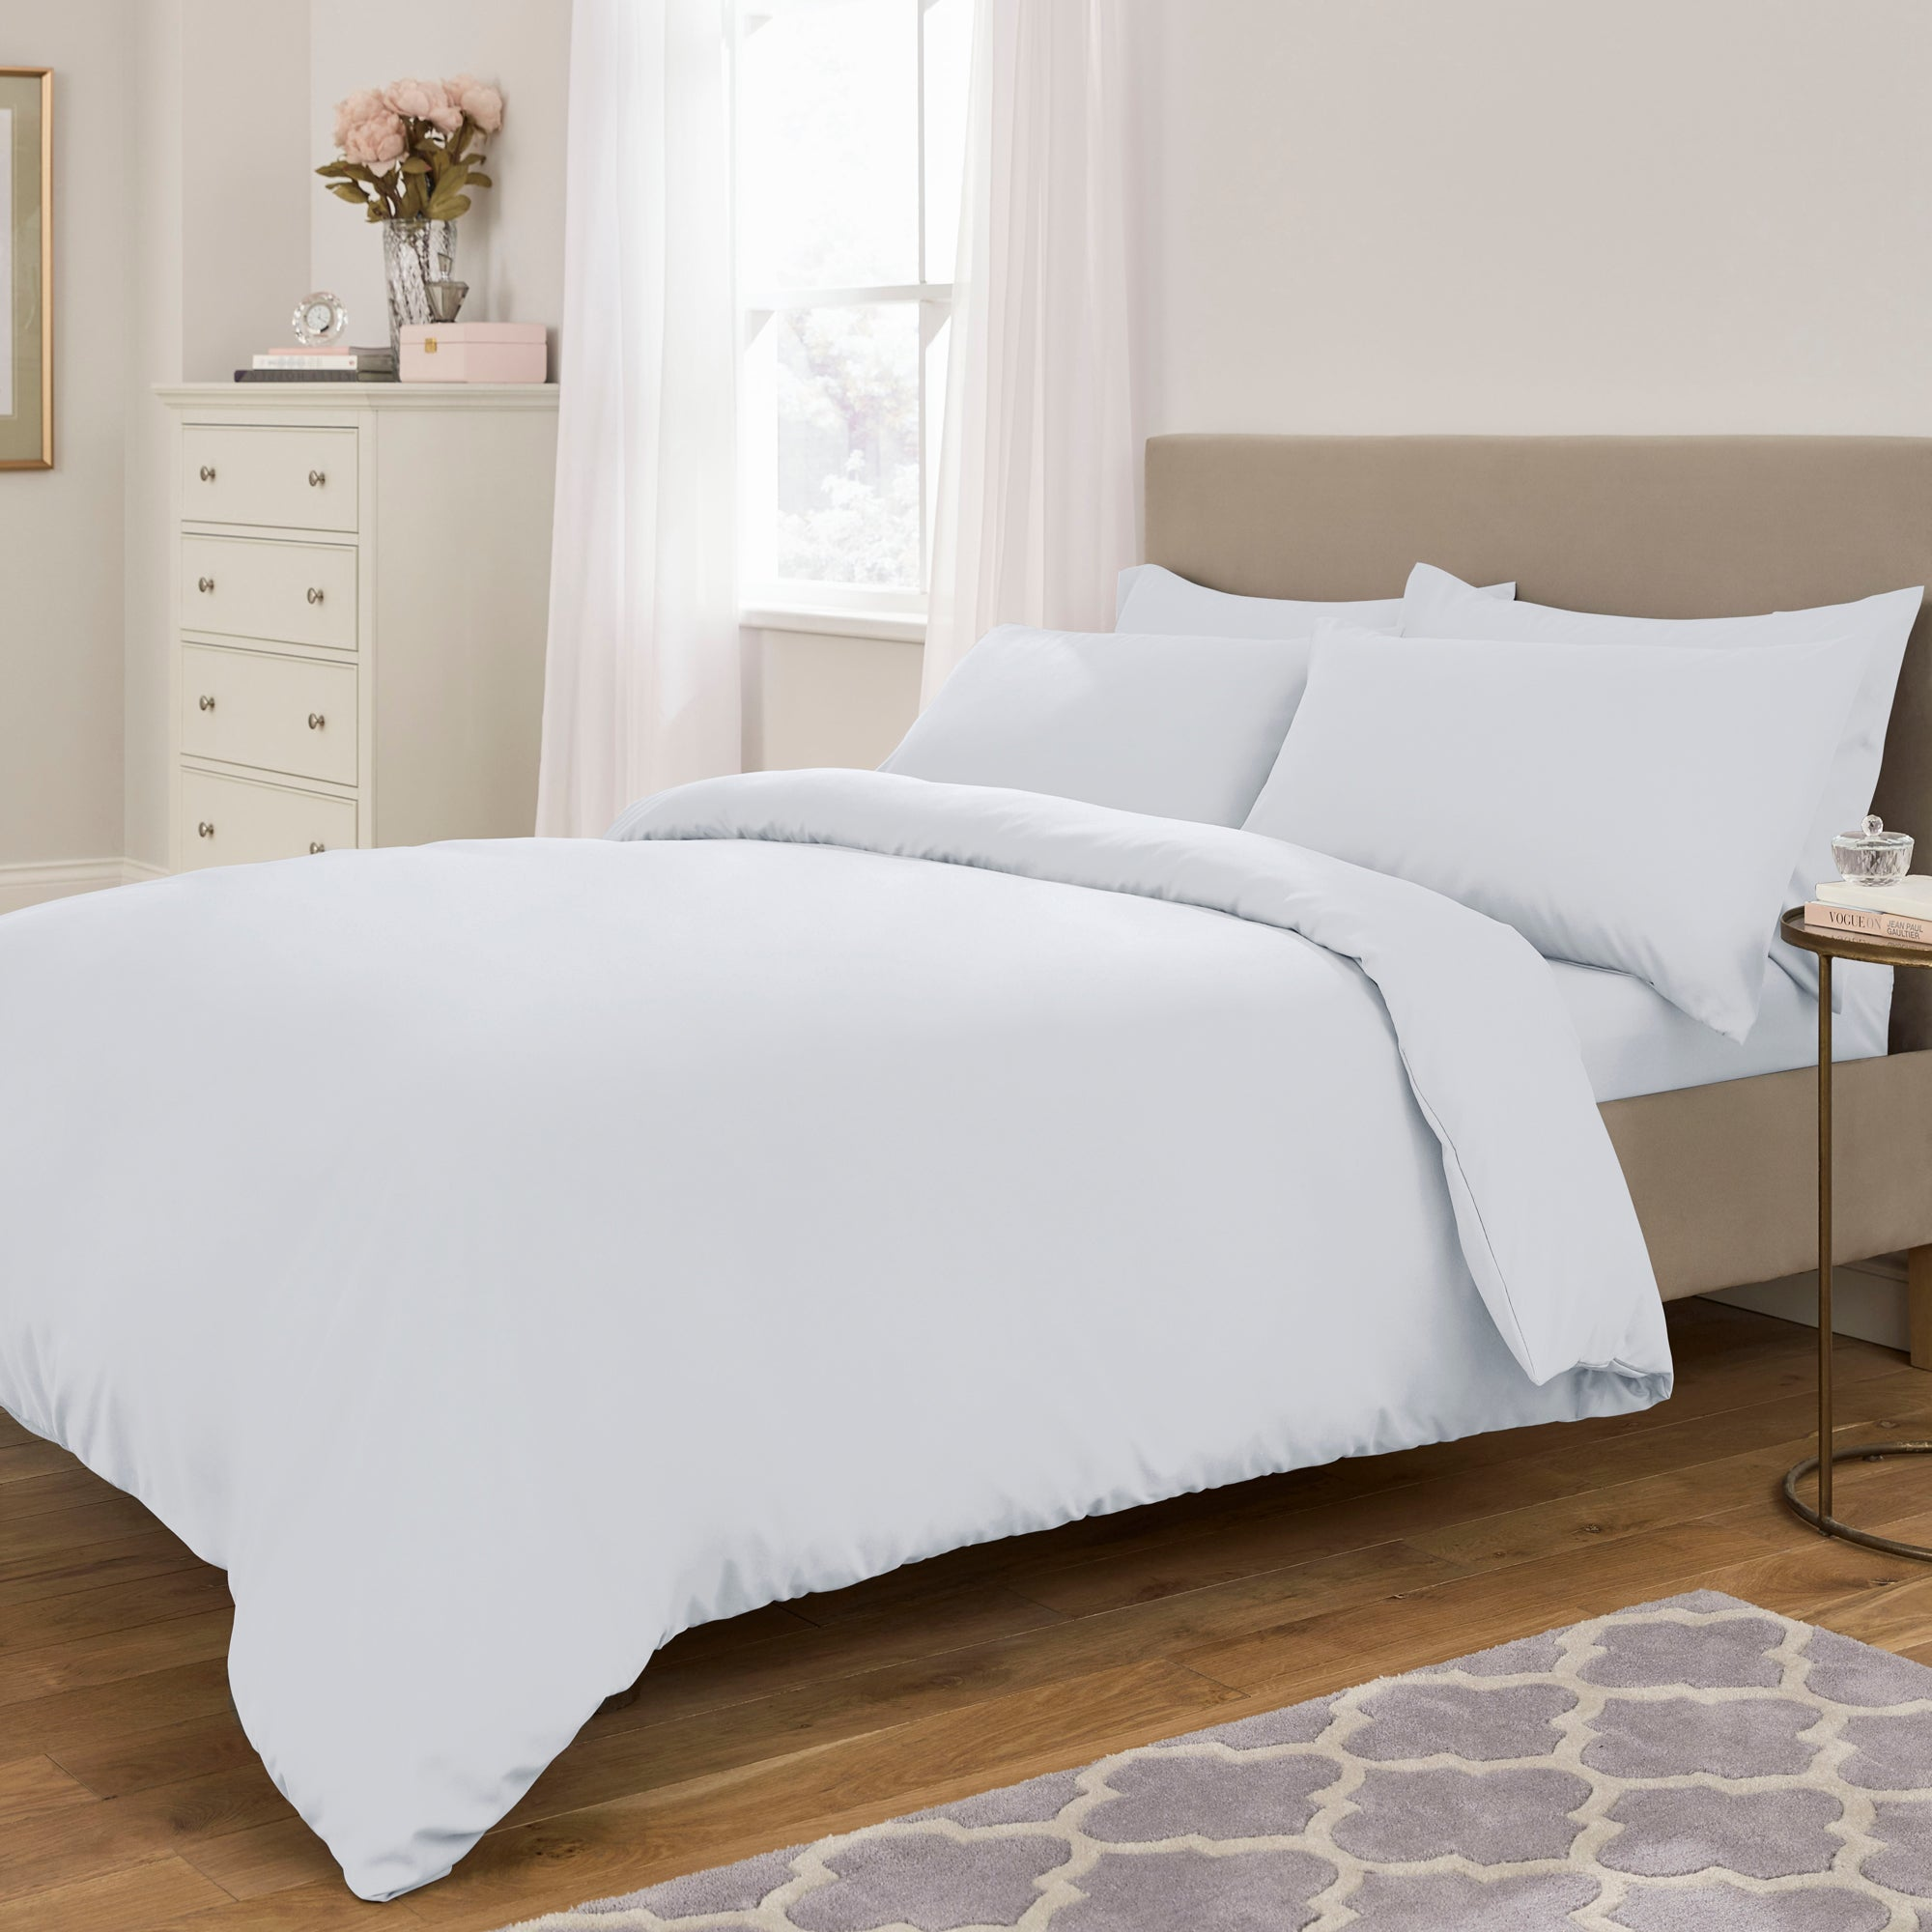 Fogarty Soft Touch White Plain Dye Bed Linen Collection